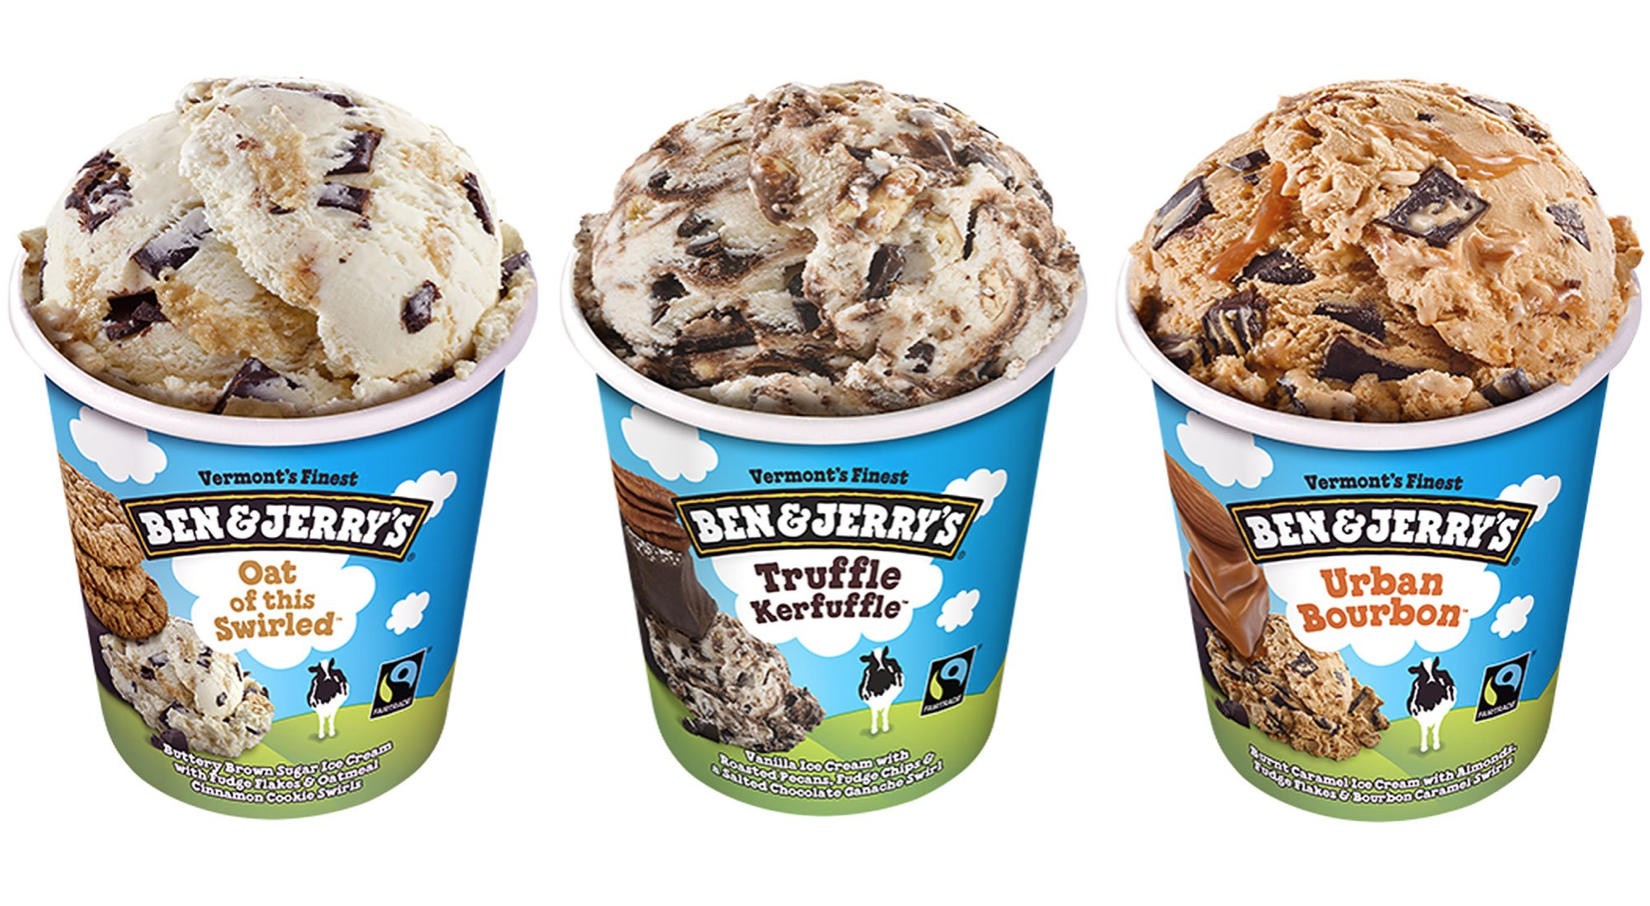 ben and Jerry's sistema de identidade visual